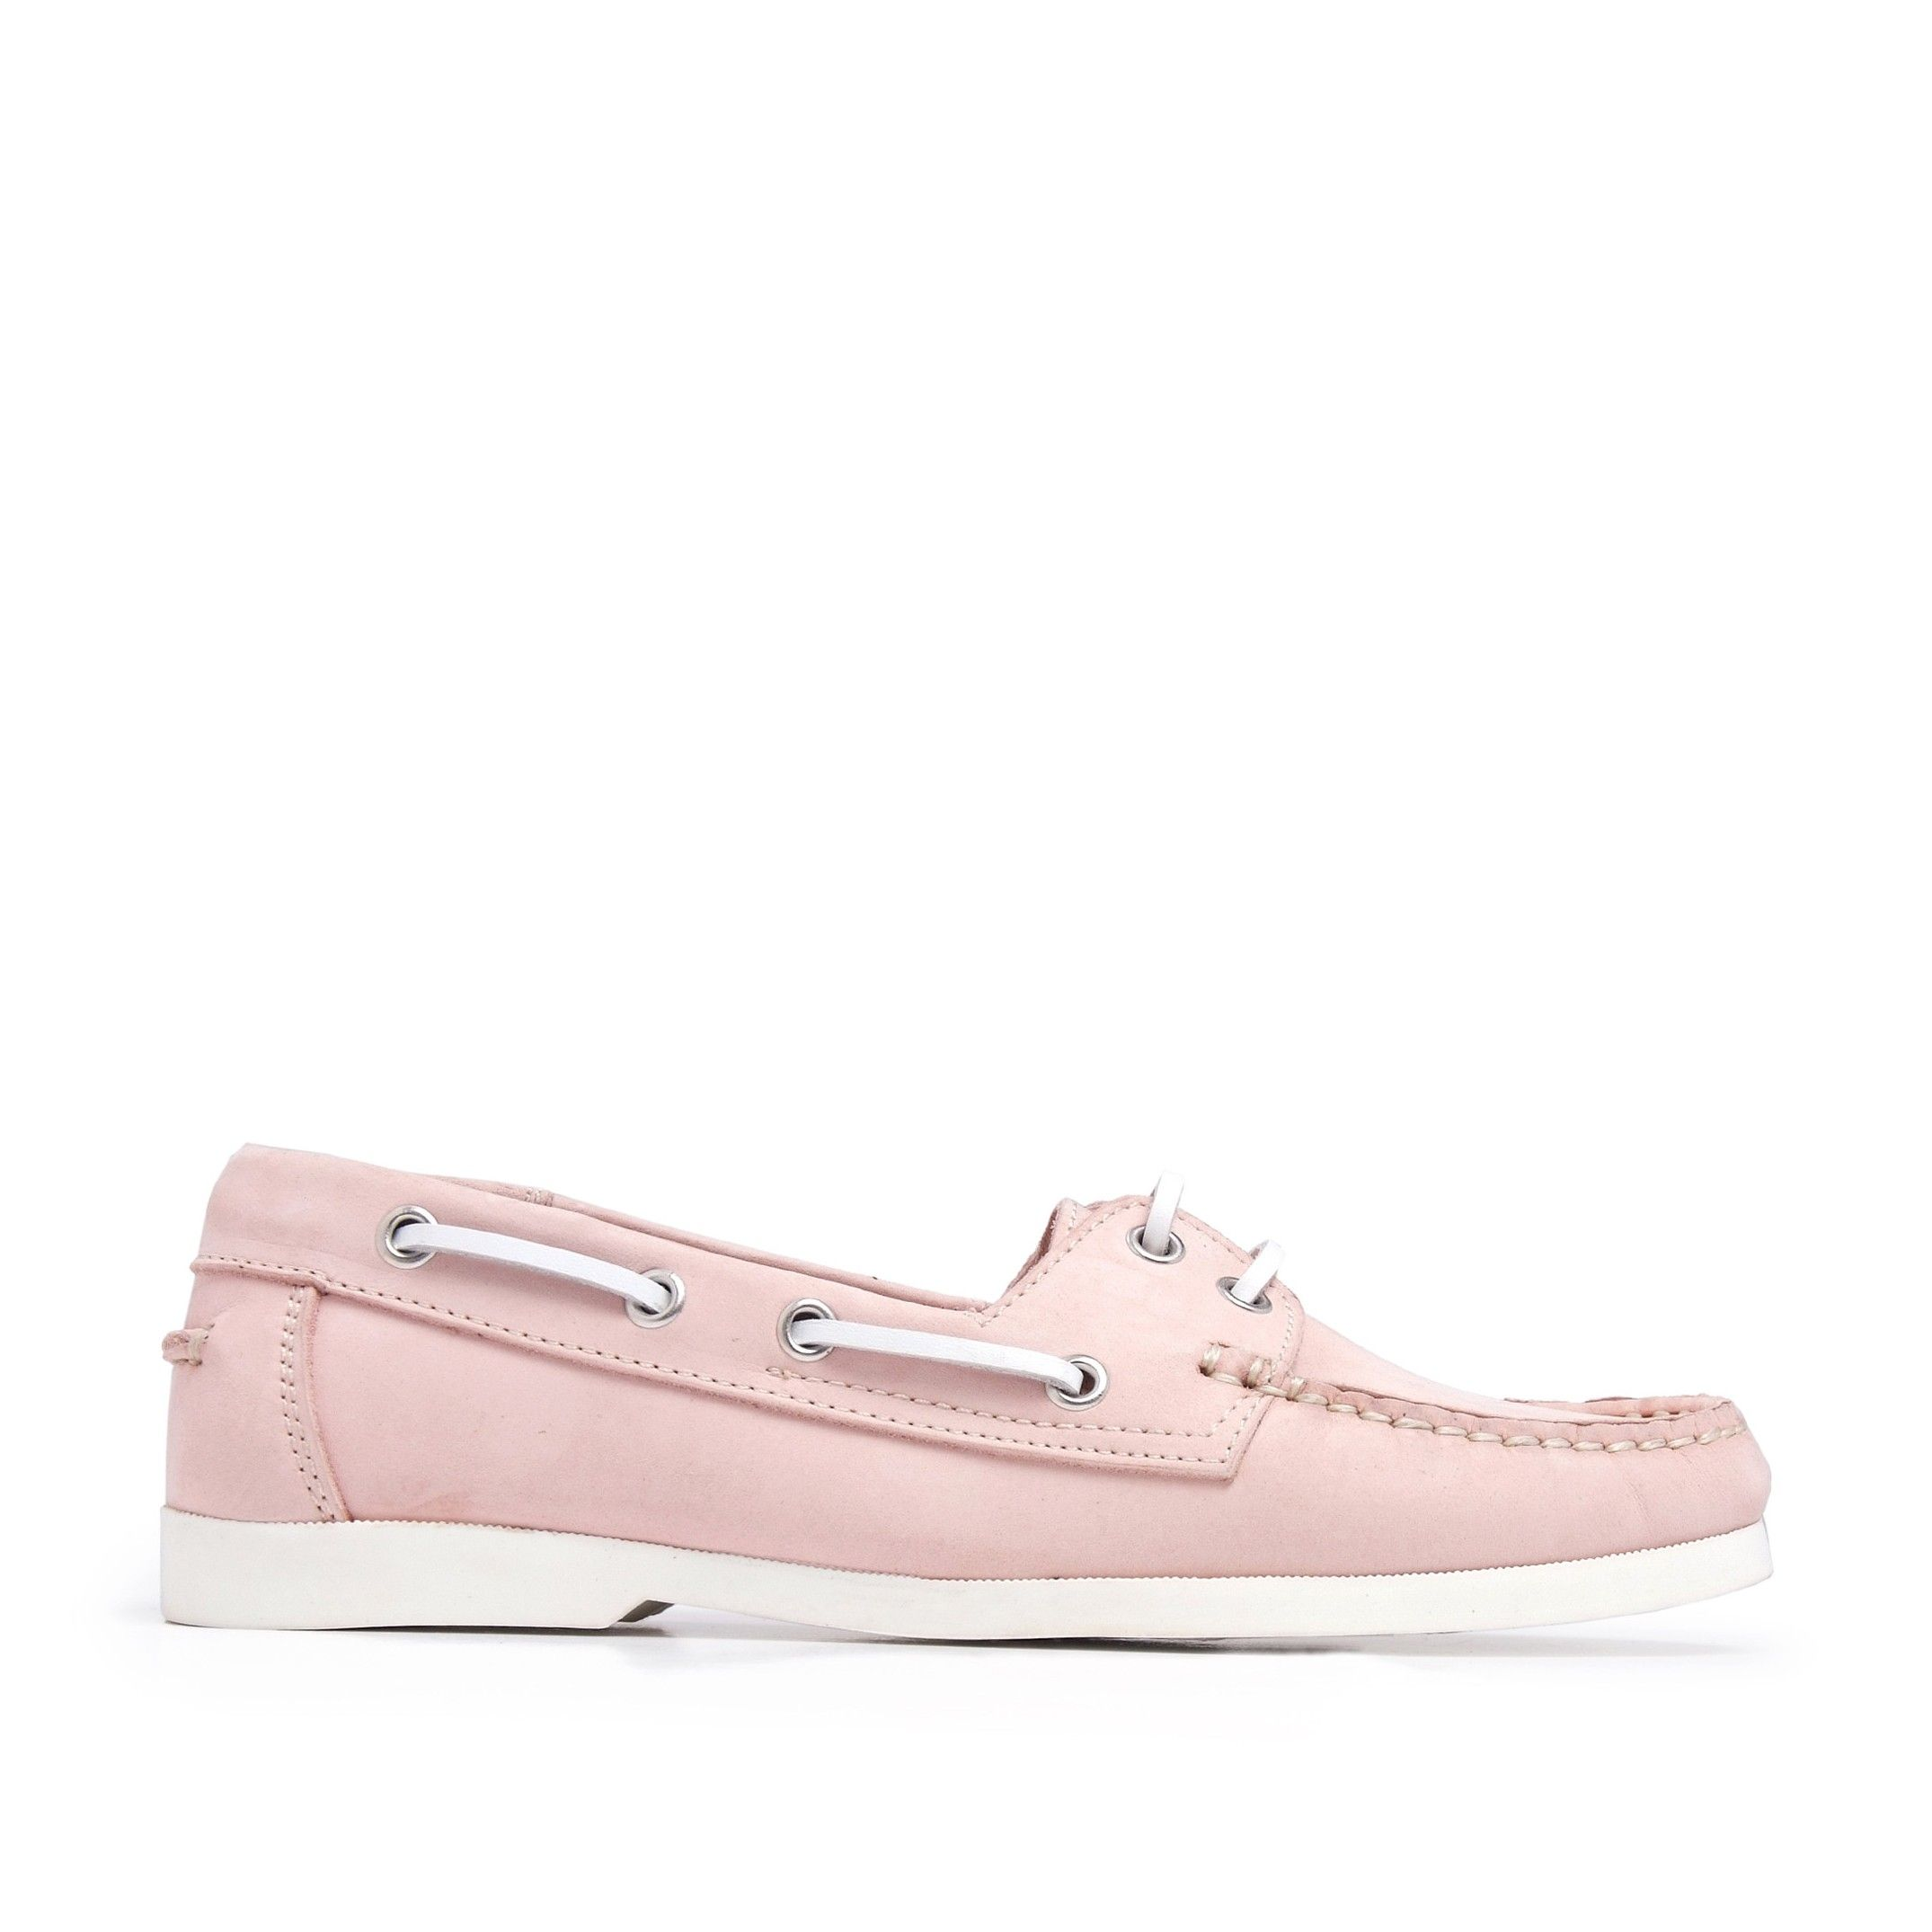 Leather Boat Shoes for Women Laces Pink Castellanisimos